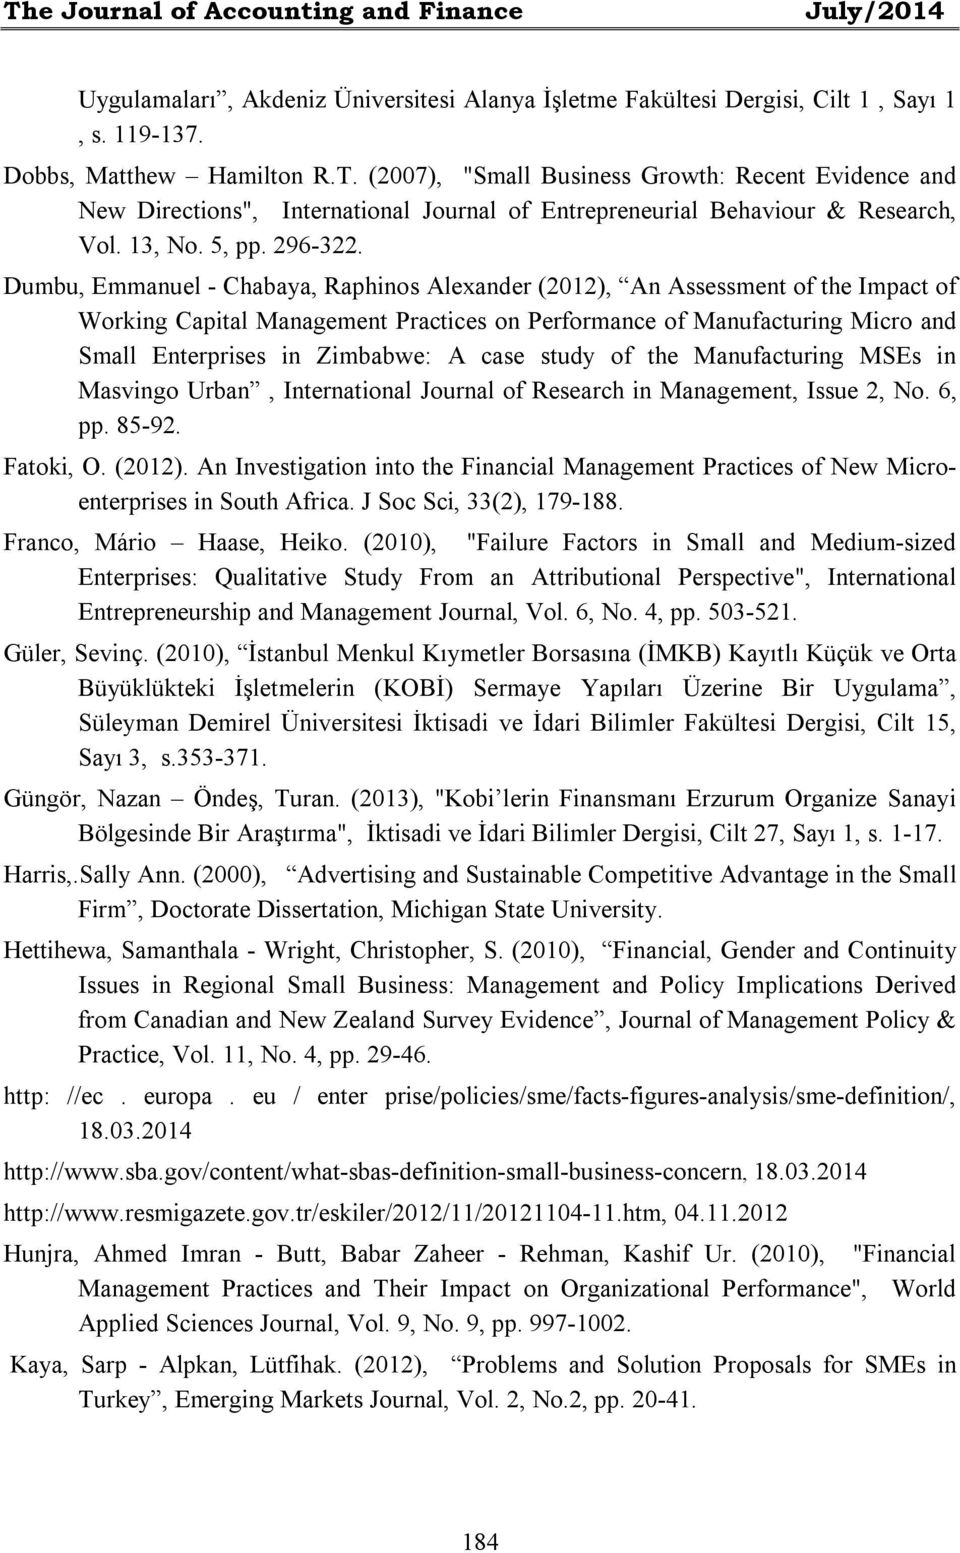 Dumbu, Emmanuel - Chabaya, Raphinos Alexander (2012), An Assessment of the Impact of Working Capital Management Practices on Performance of Manufacturing Micro and Small Enterprises in Zimbabwe: A